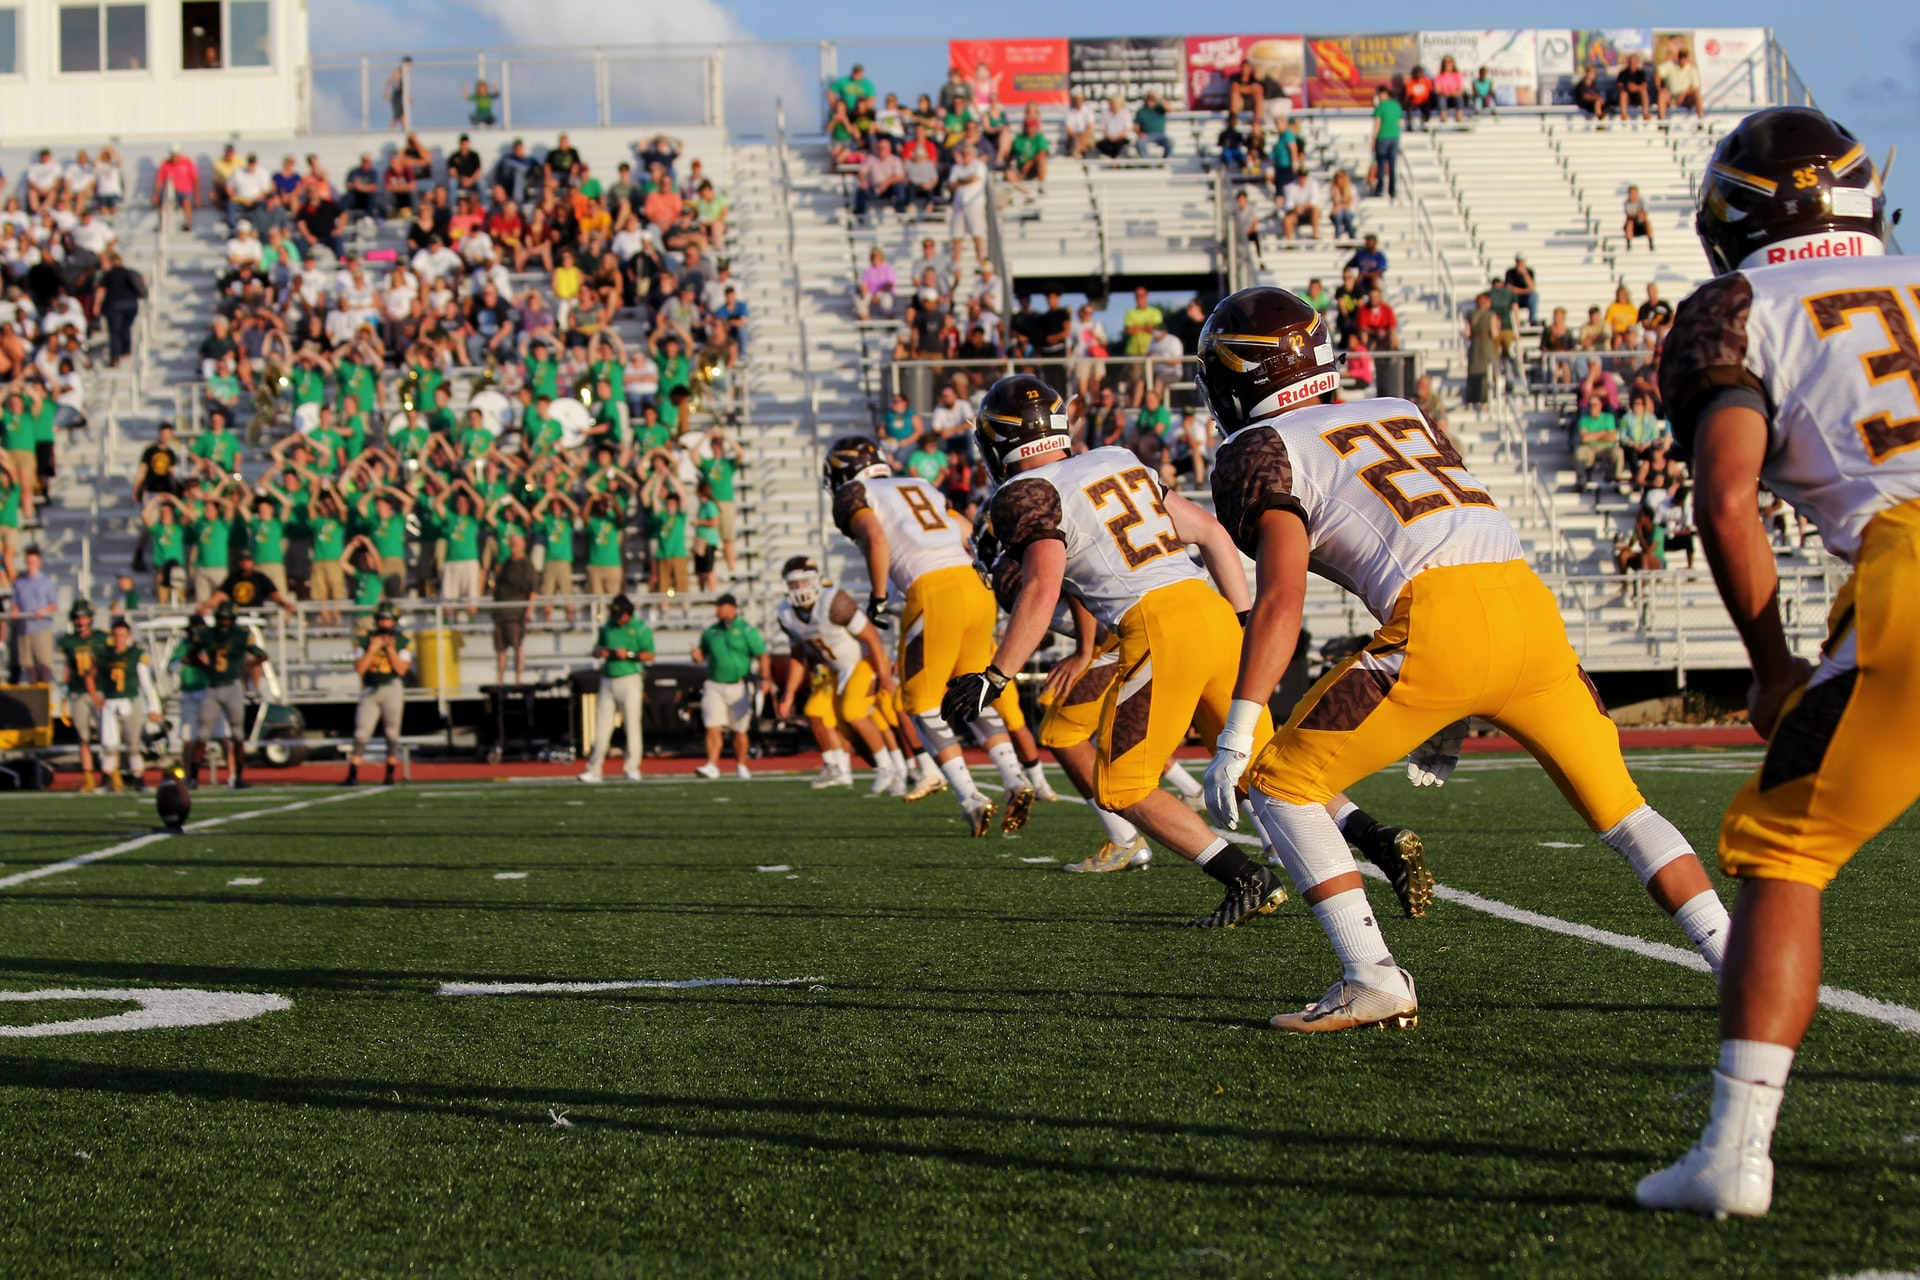 Photo of college football game at JFK Stadium, Springfield, United States